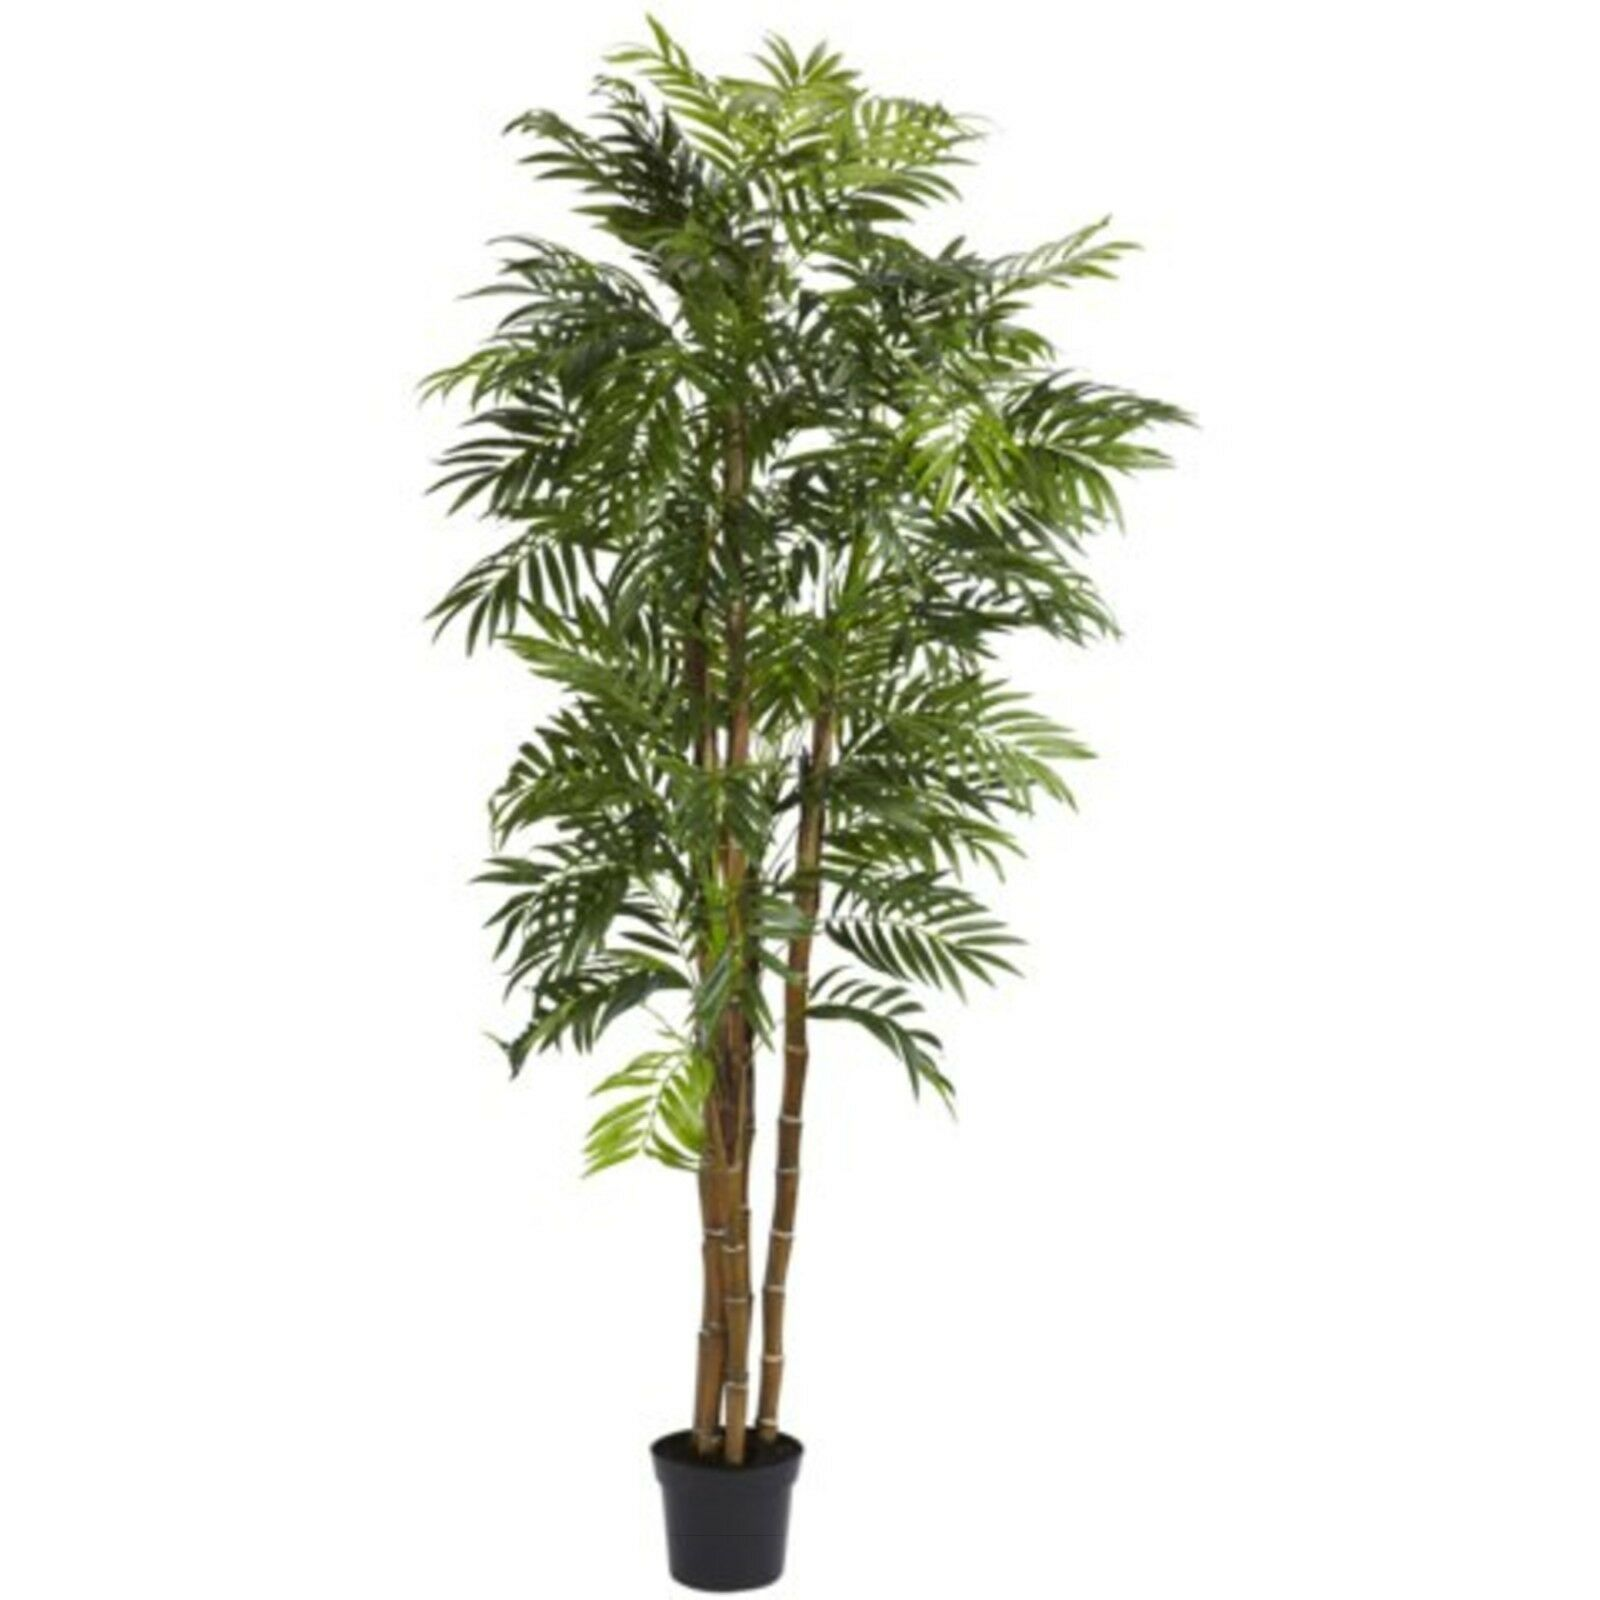 Decorative Natural Looking Artificial 6' Bella Palm Silk Tree Potted Faux Plants